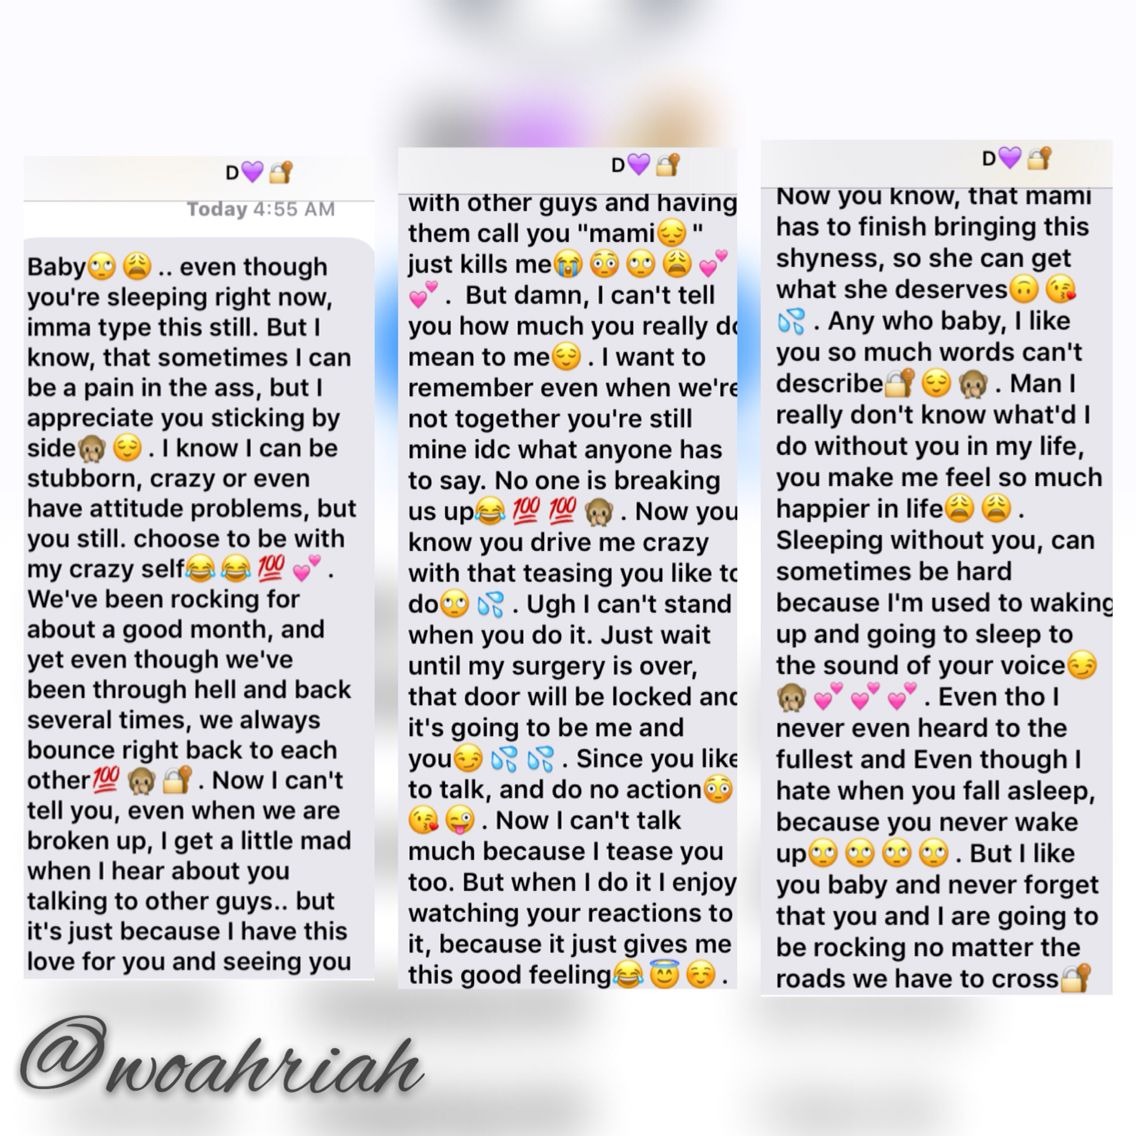 Anele Mdoda Sends Her Boyfriend The Sweetest Birthday: Messages Like This Mean Everything To Me I Swear @woahriah